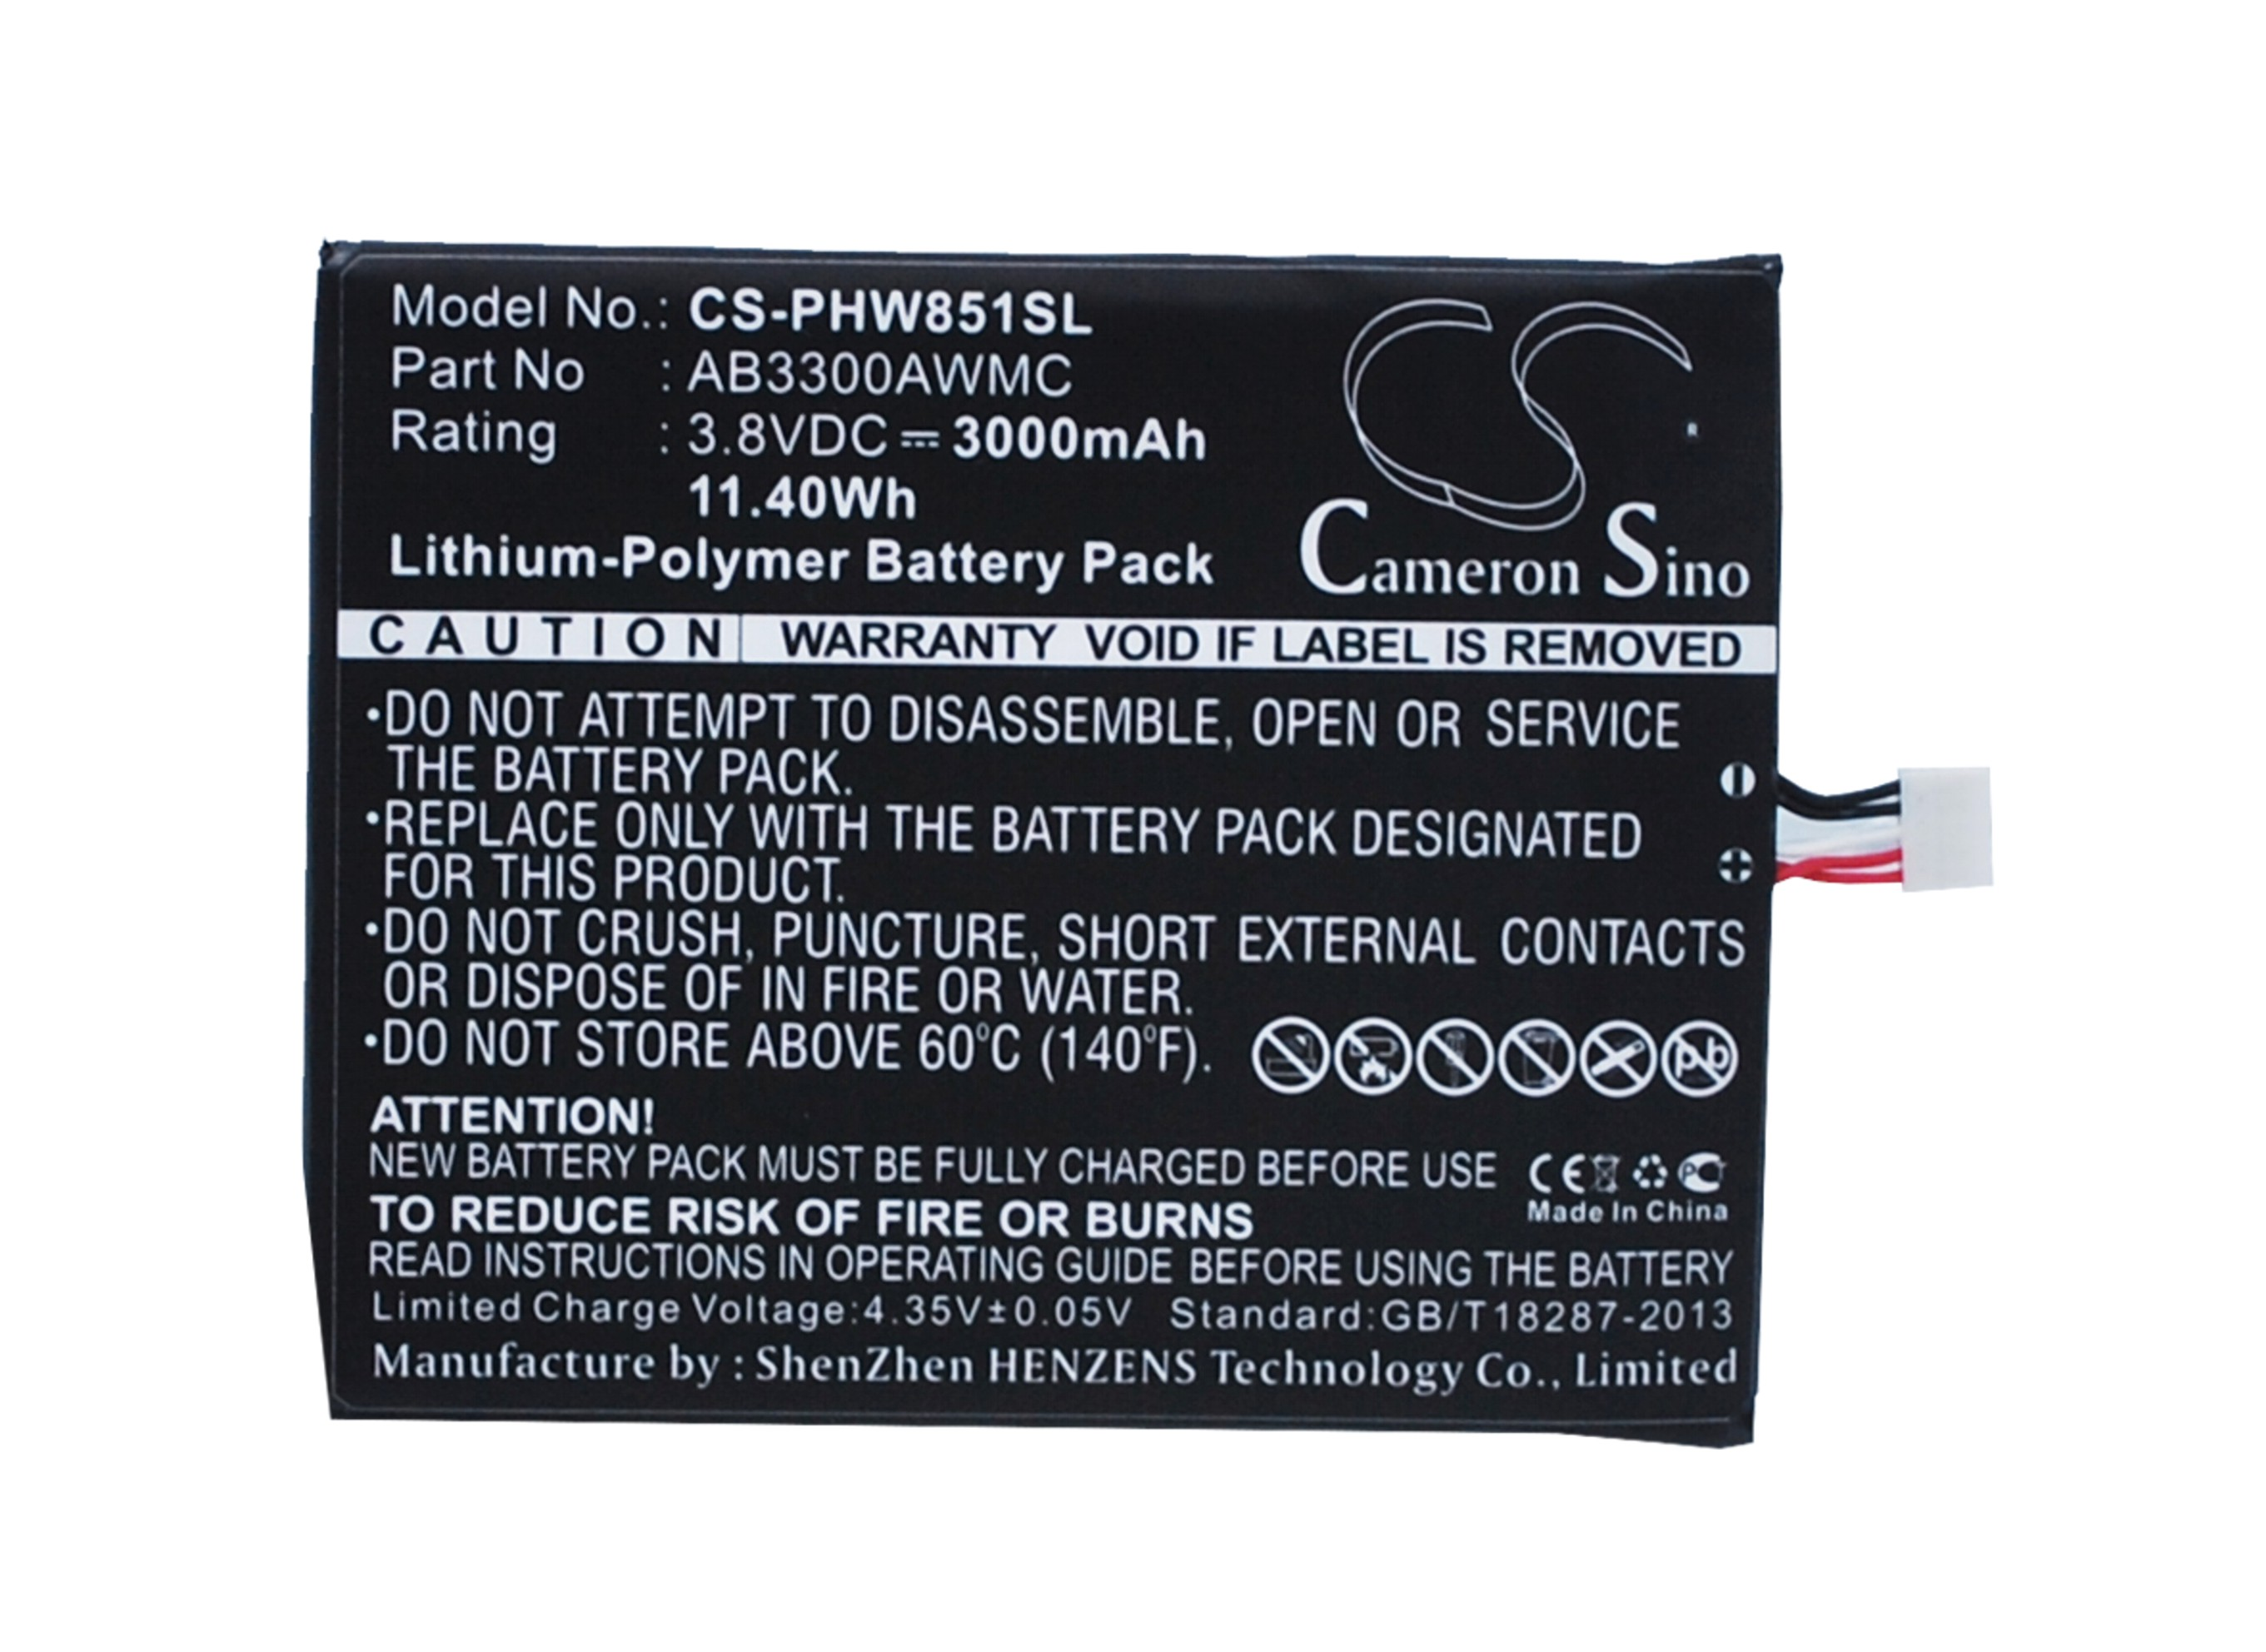 Cameron Sino High Quality 3000mAh Battery AB3300AWMC for Philips W8510, Xenium W8510